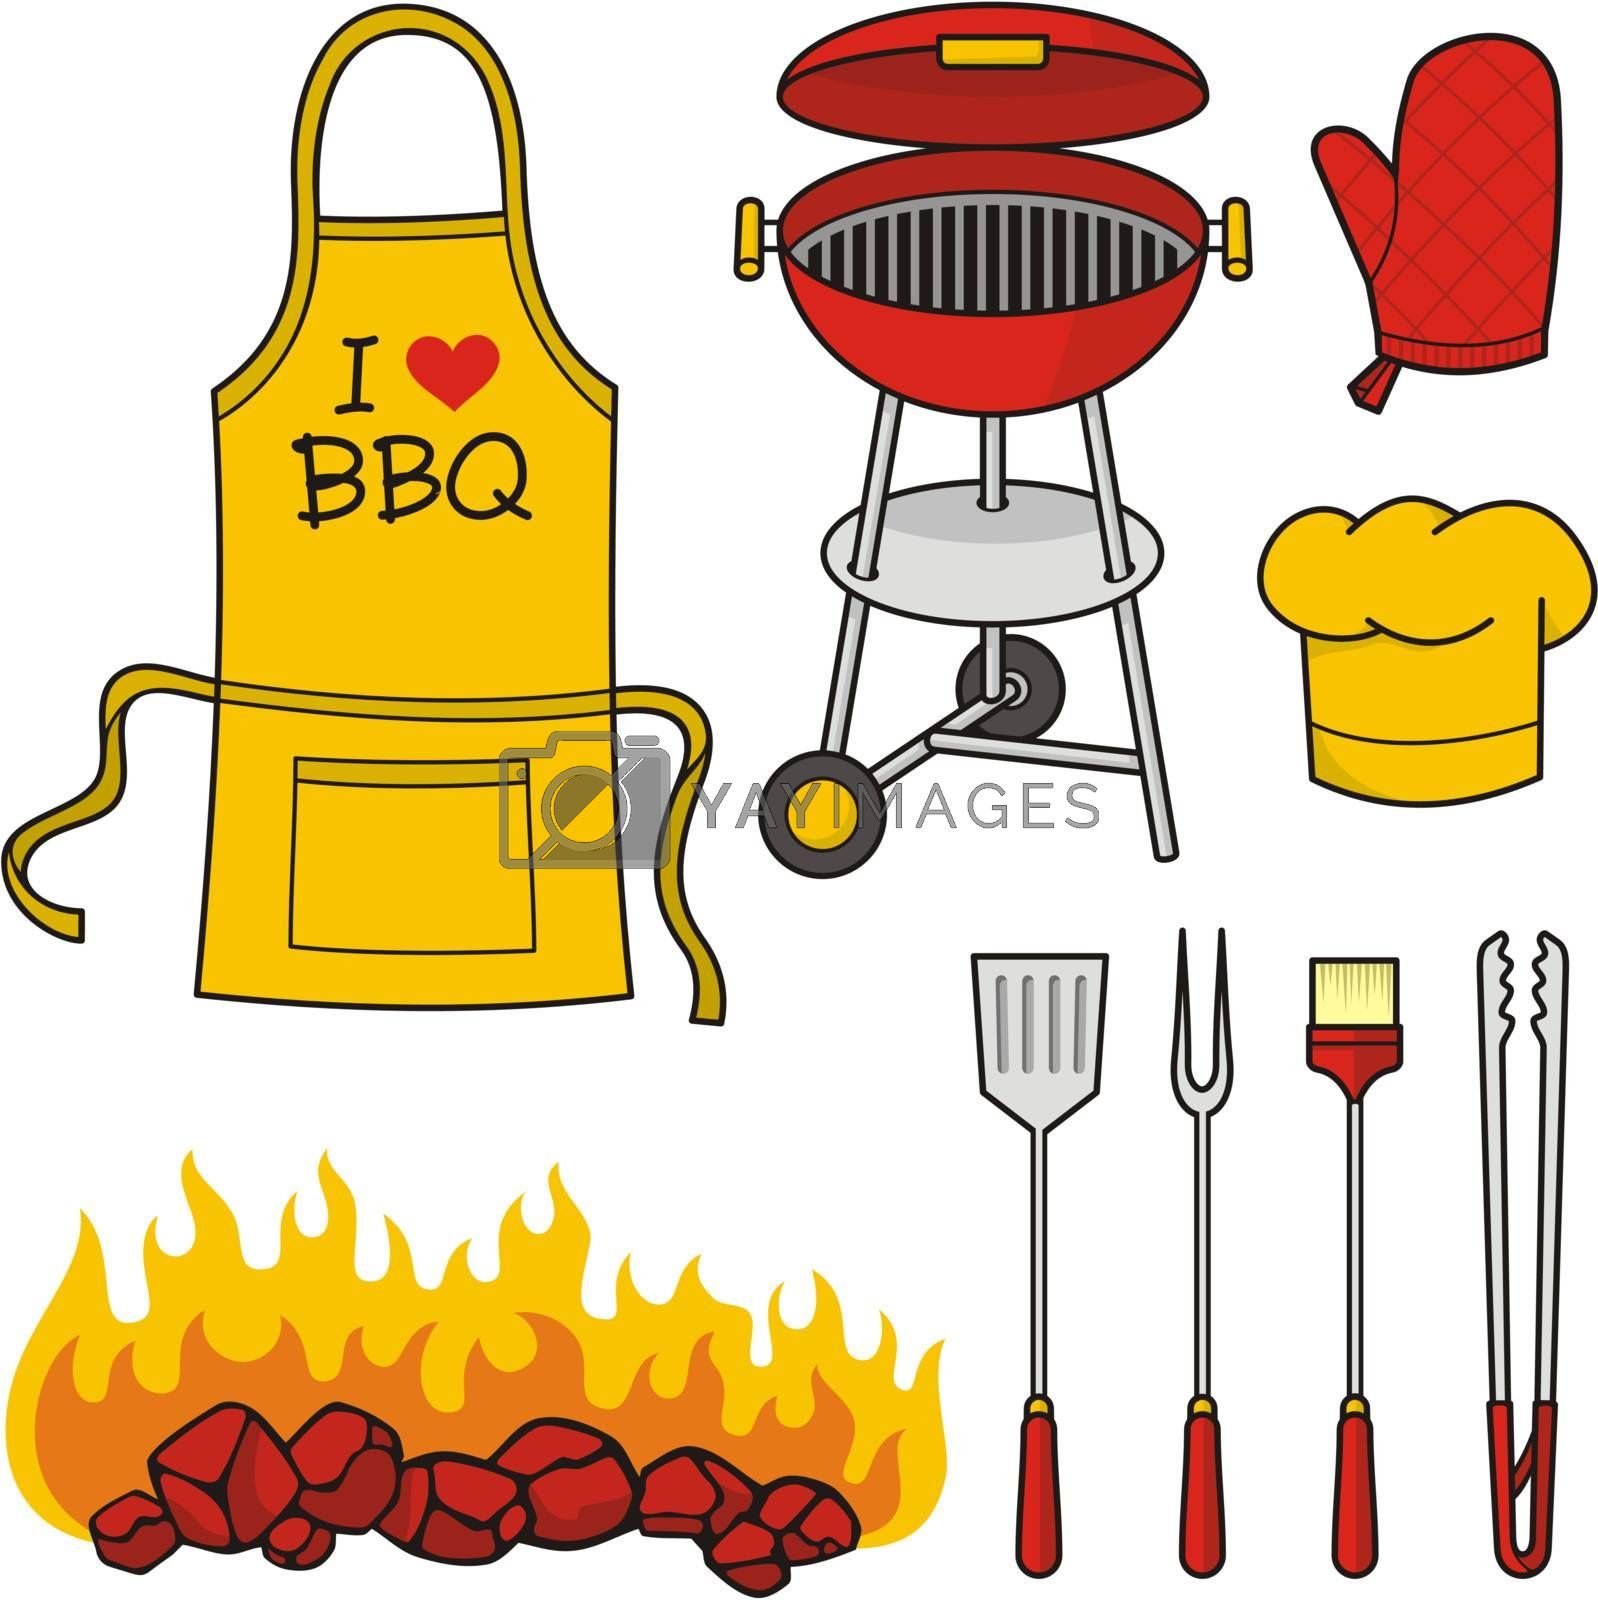 Barbeque icons by sifis